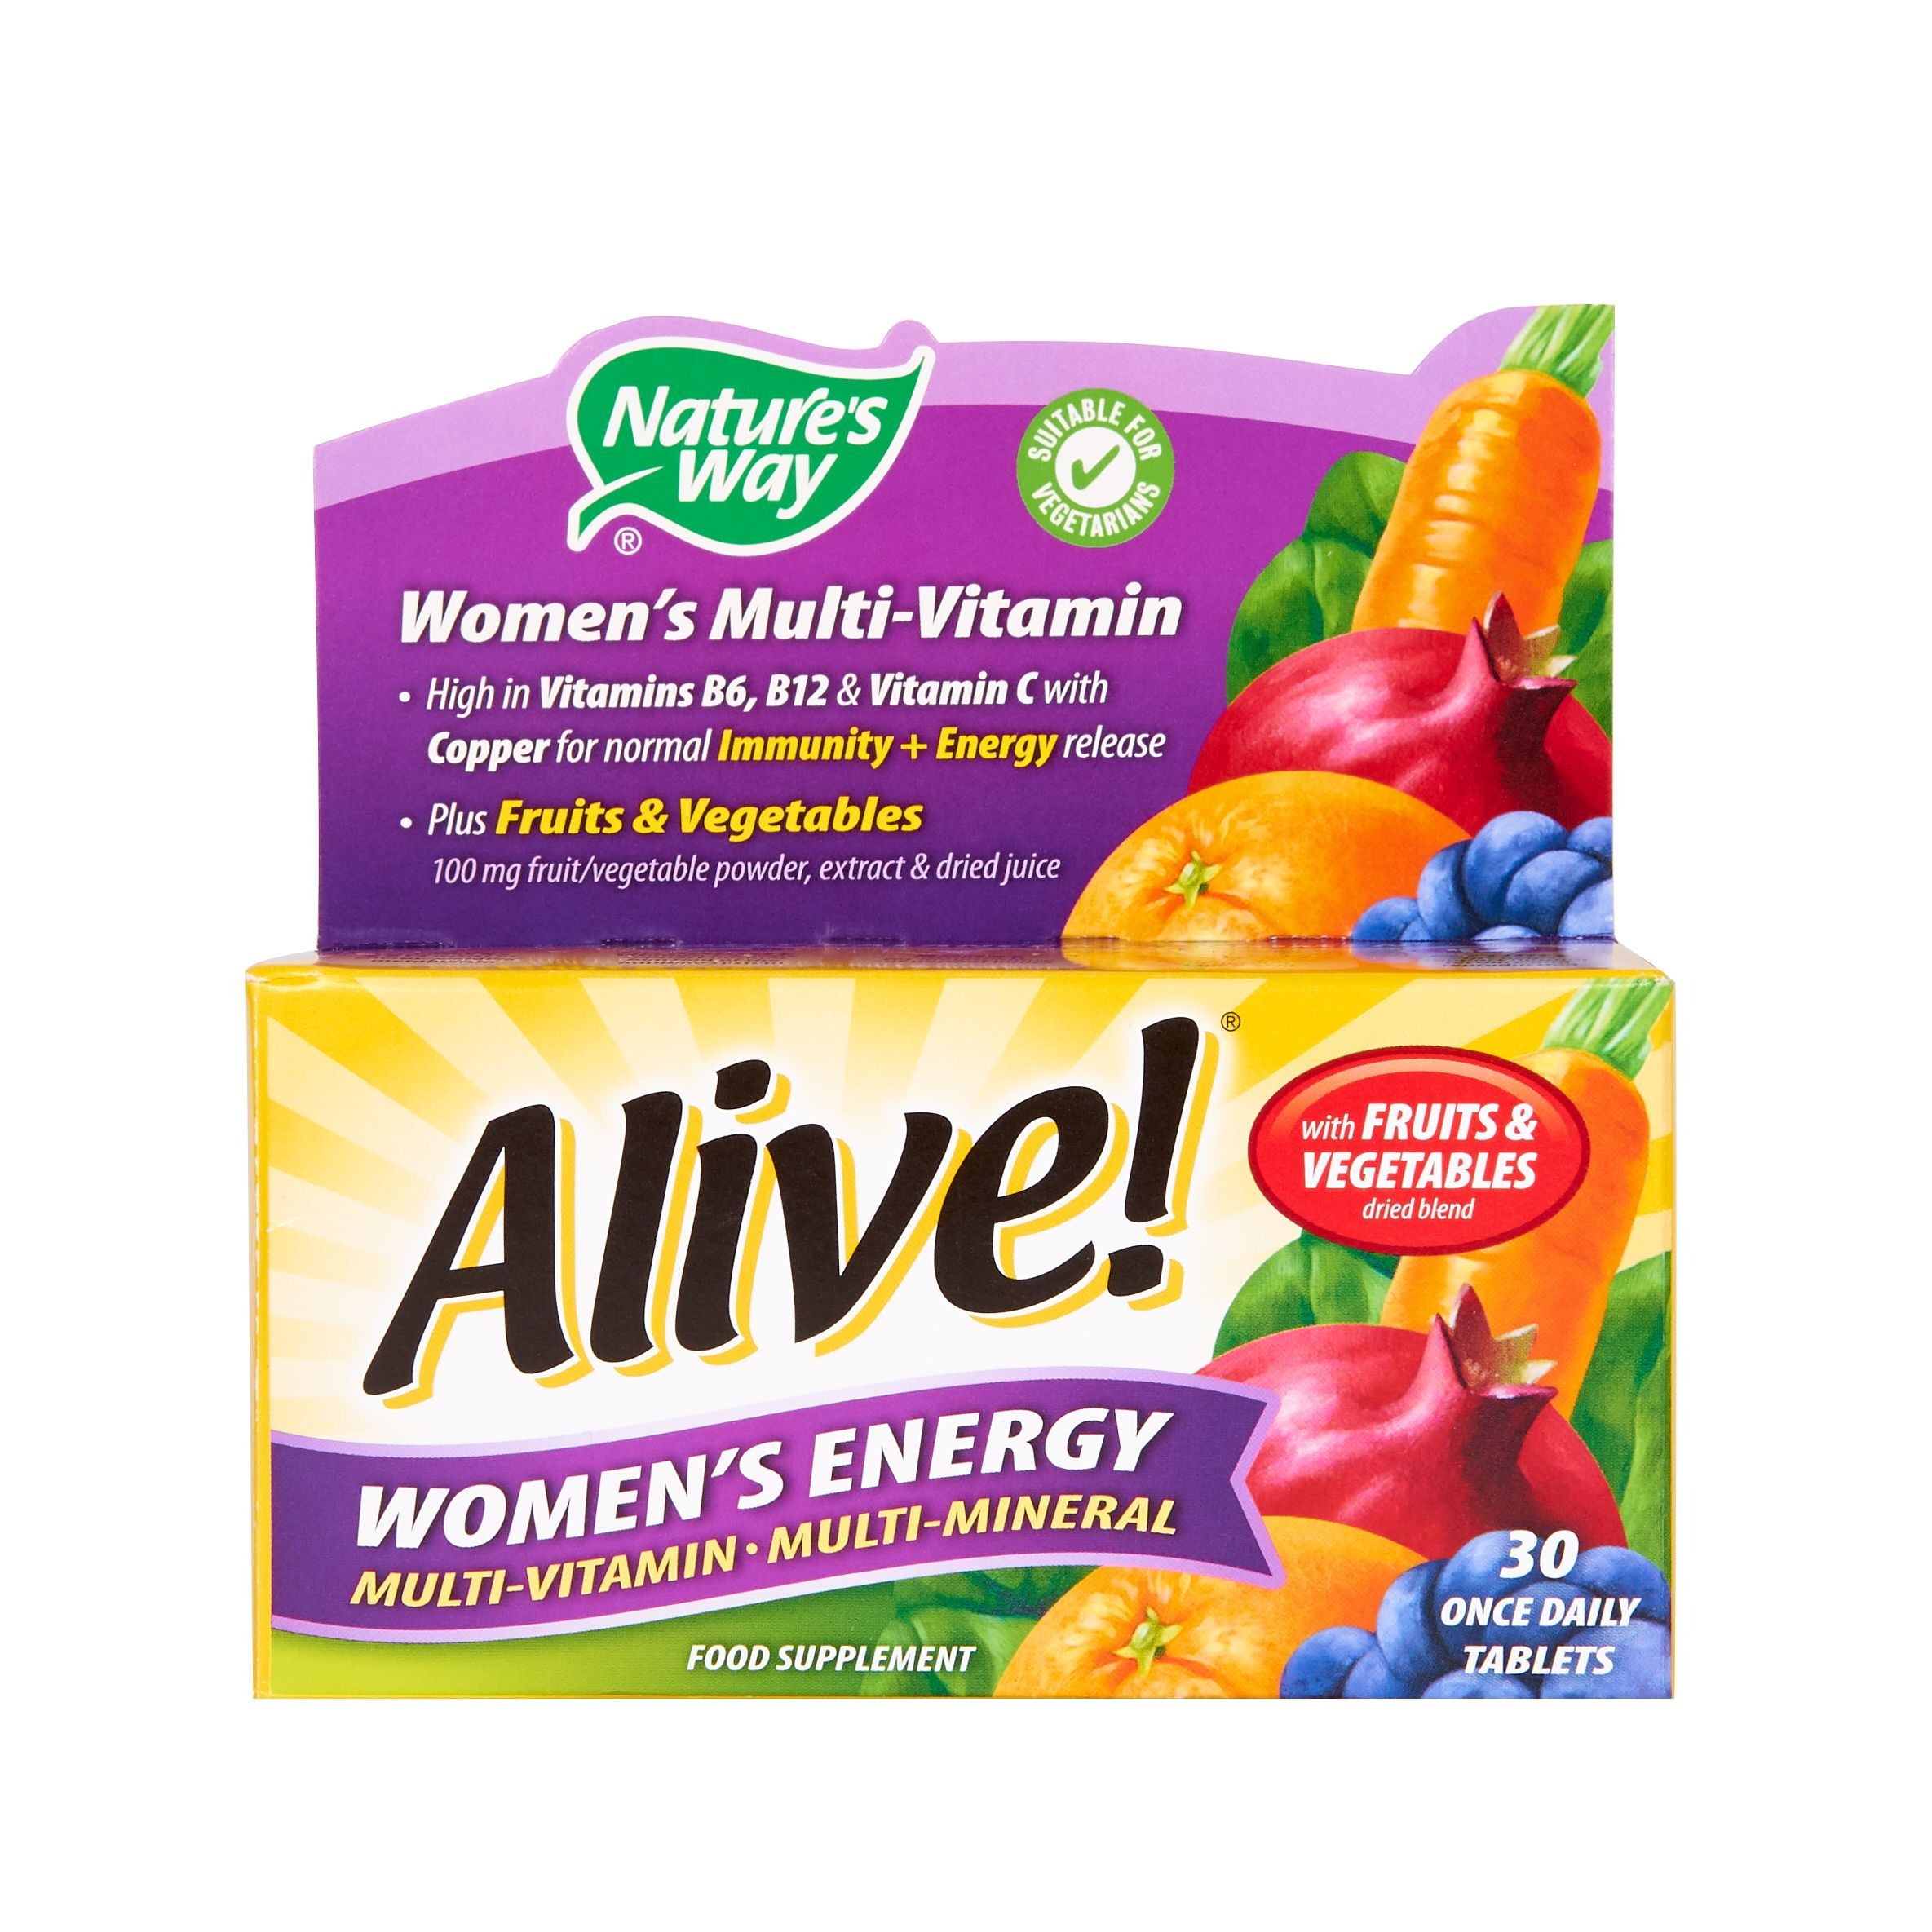 Nature's Way Alive! Women's Energy Tablets